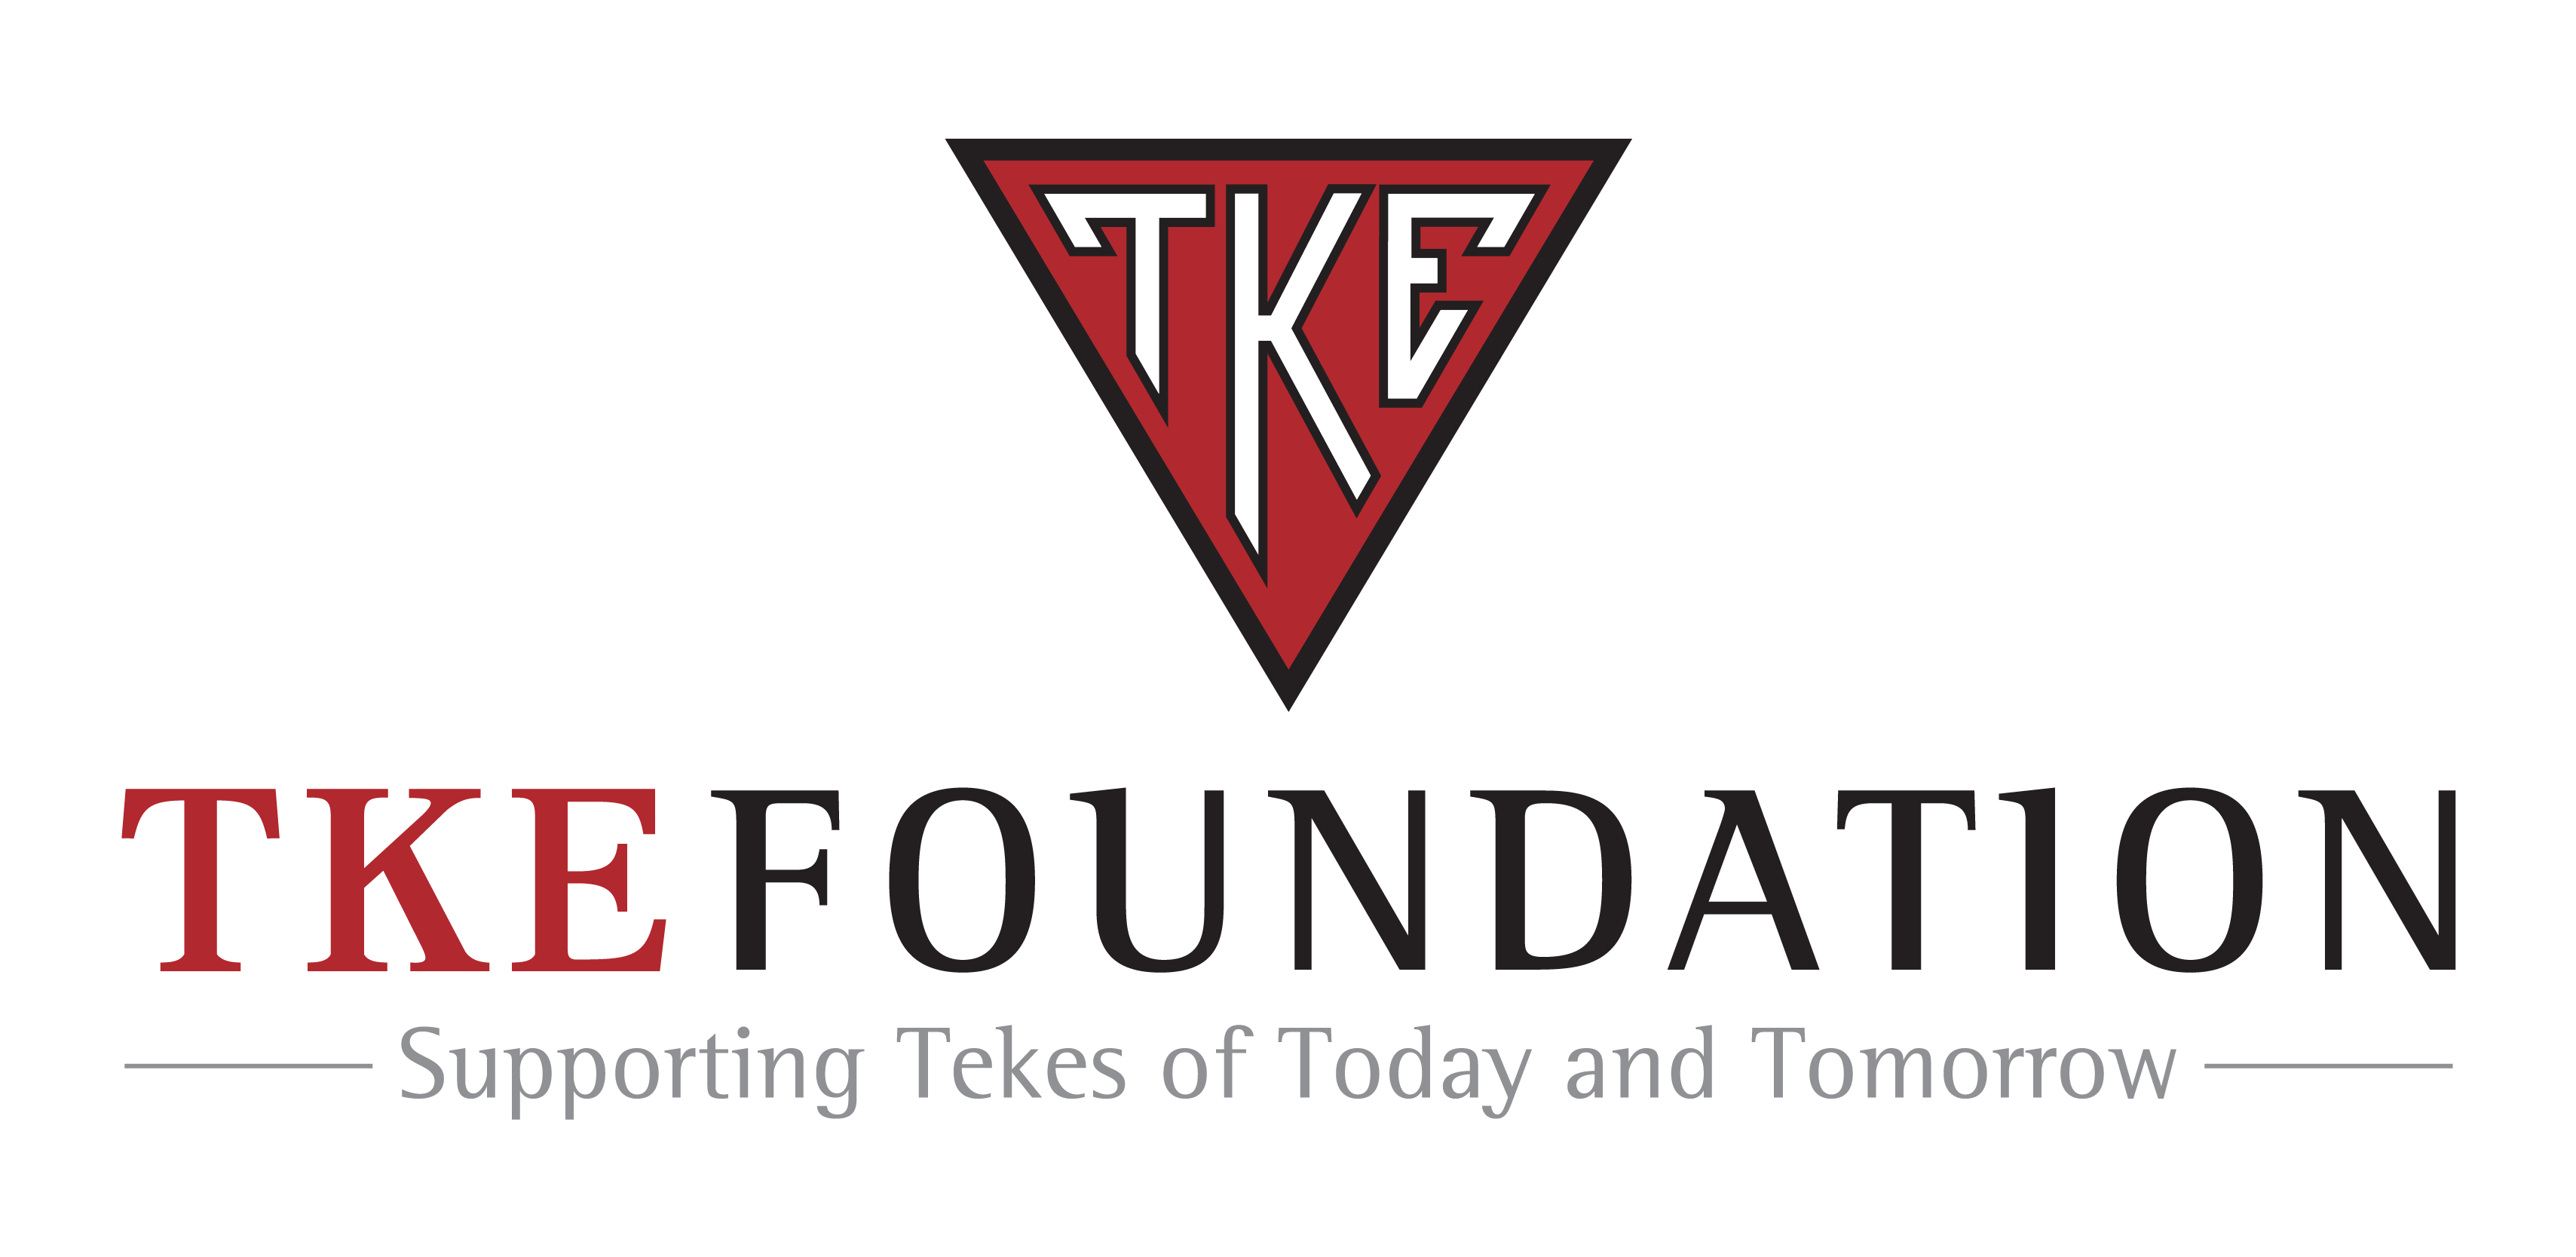 TKE Foundation Introduces New Governance Model, Mission and Vision